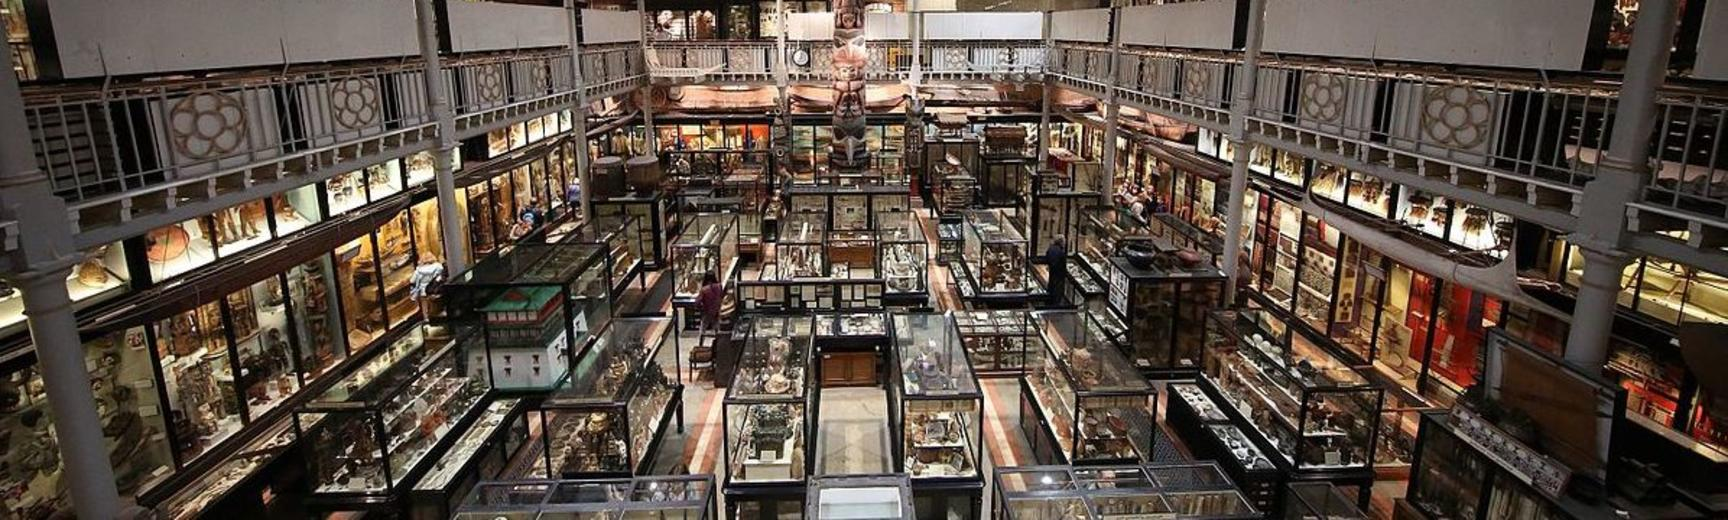 interior of pitt rivers museum 2015 flipped and no tde